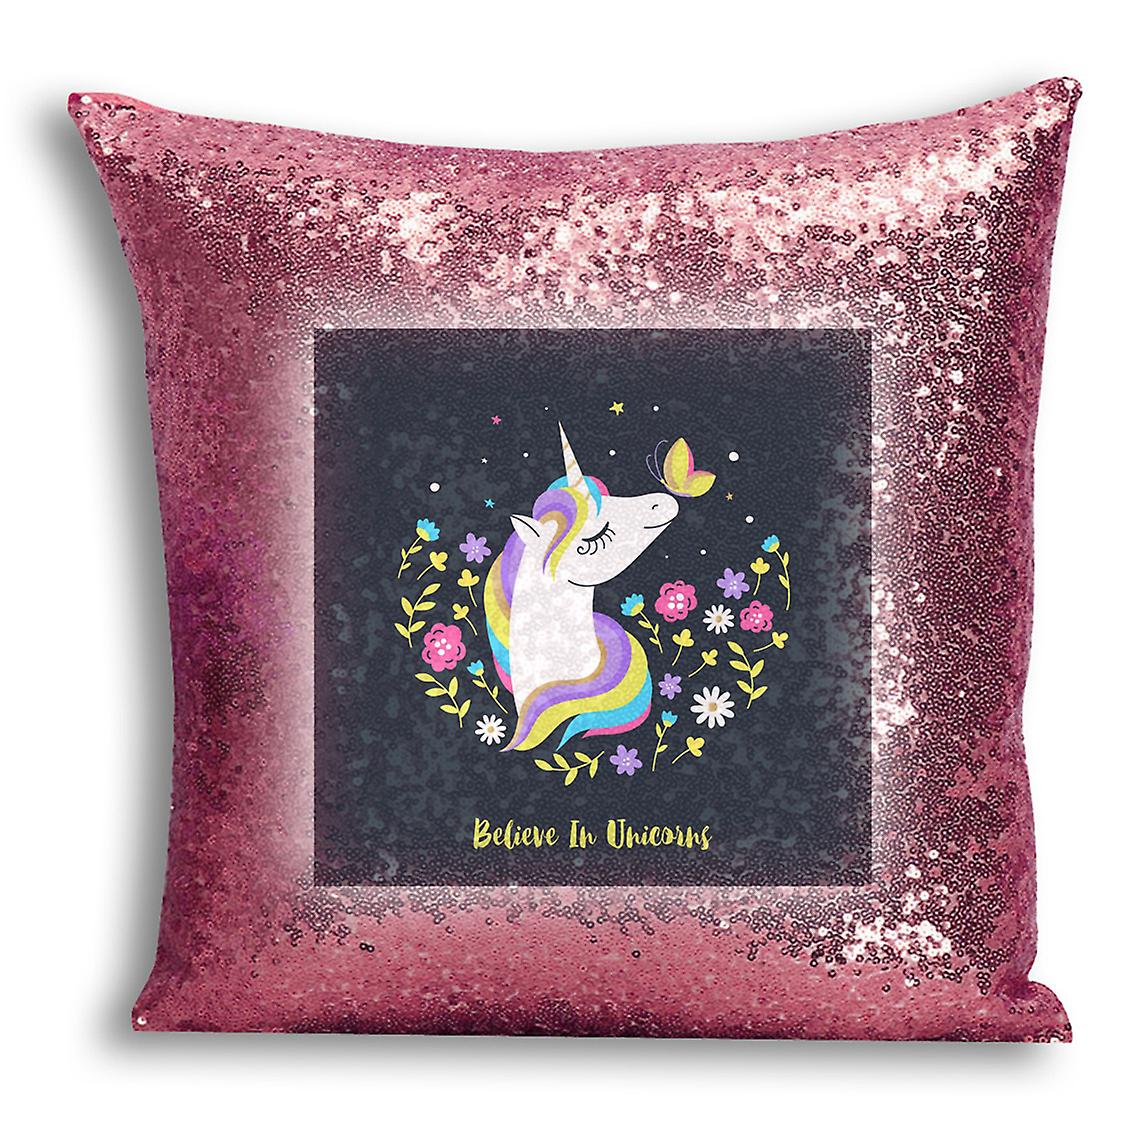 I Sequin Gold CushionPillow Inserted With tronixsUnicorn 14 Rose Home Cover Decor Design For Printed Tl1cFJK